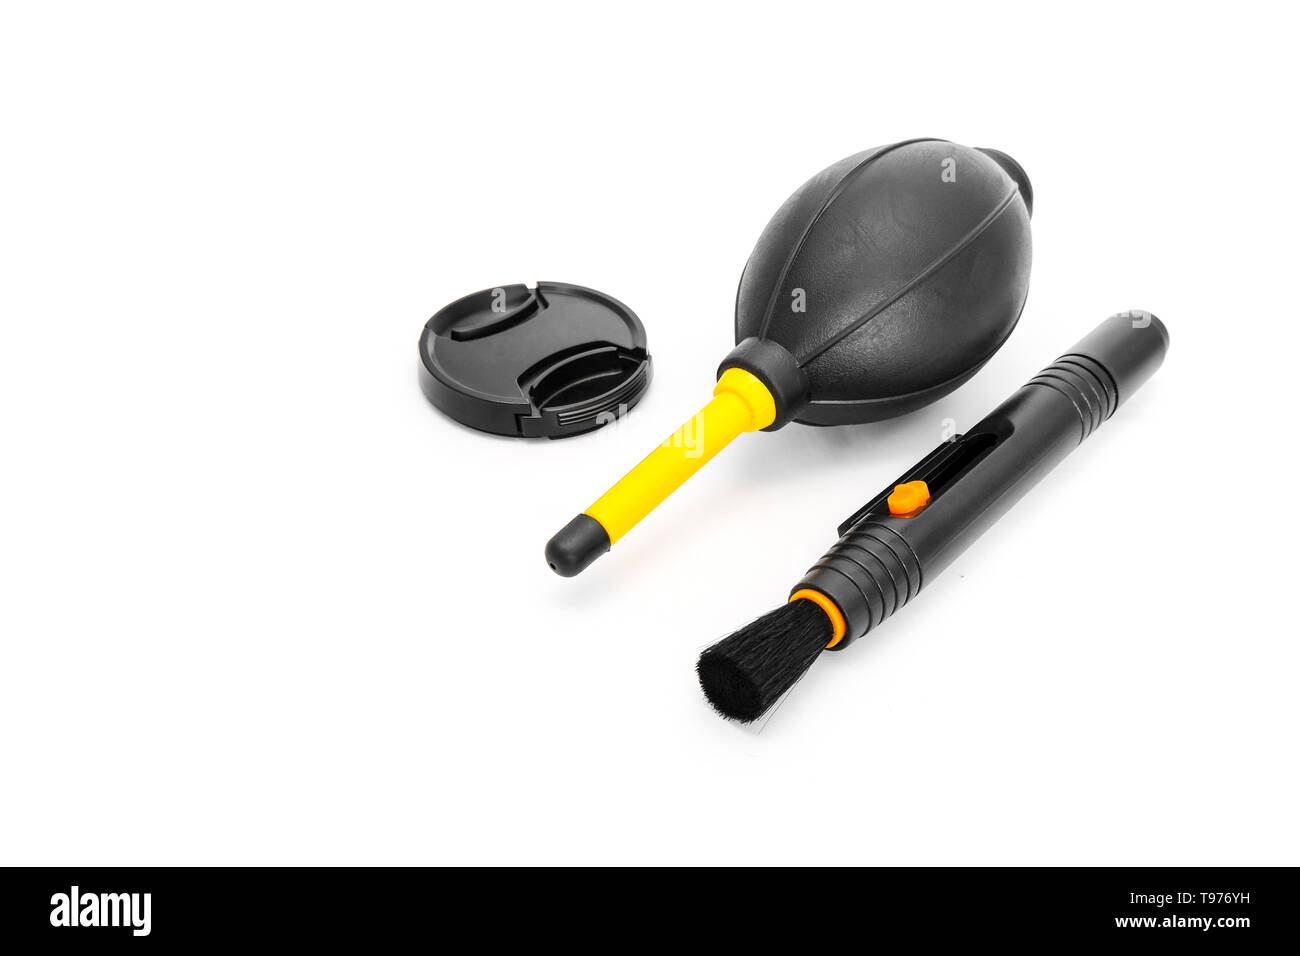 Closeup Lens Pen, Blower Brush and Lens Cover Black Color Tool (Symbol) for Clean Photographic Equipment. Camera Cleaning Set Isolated on White Studio Stock Photo